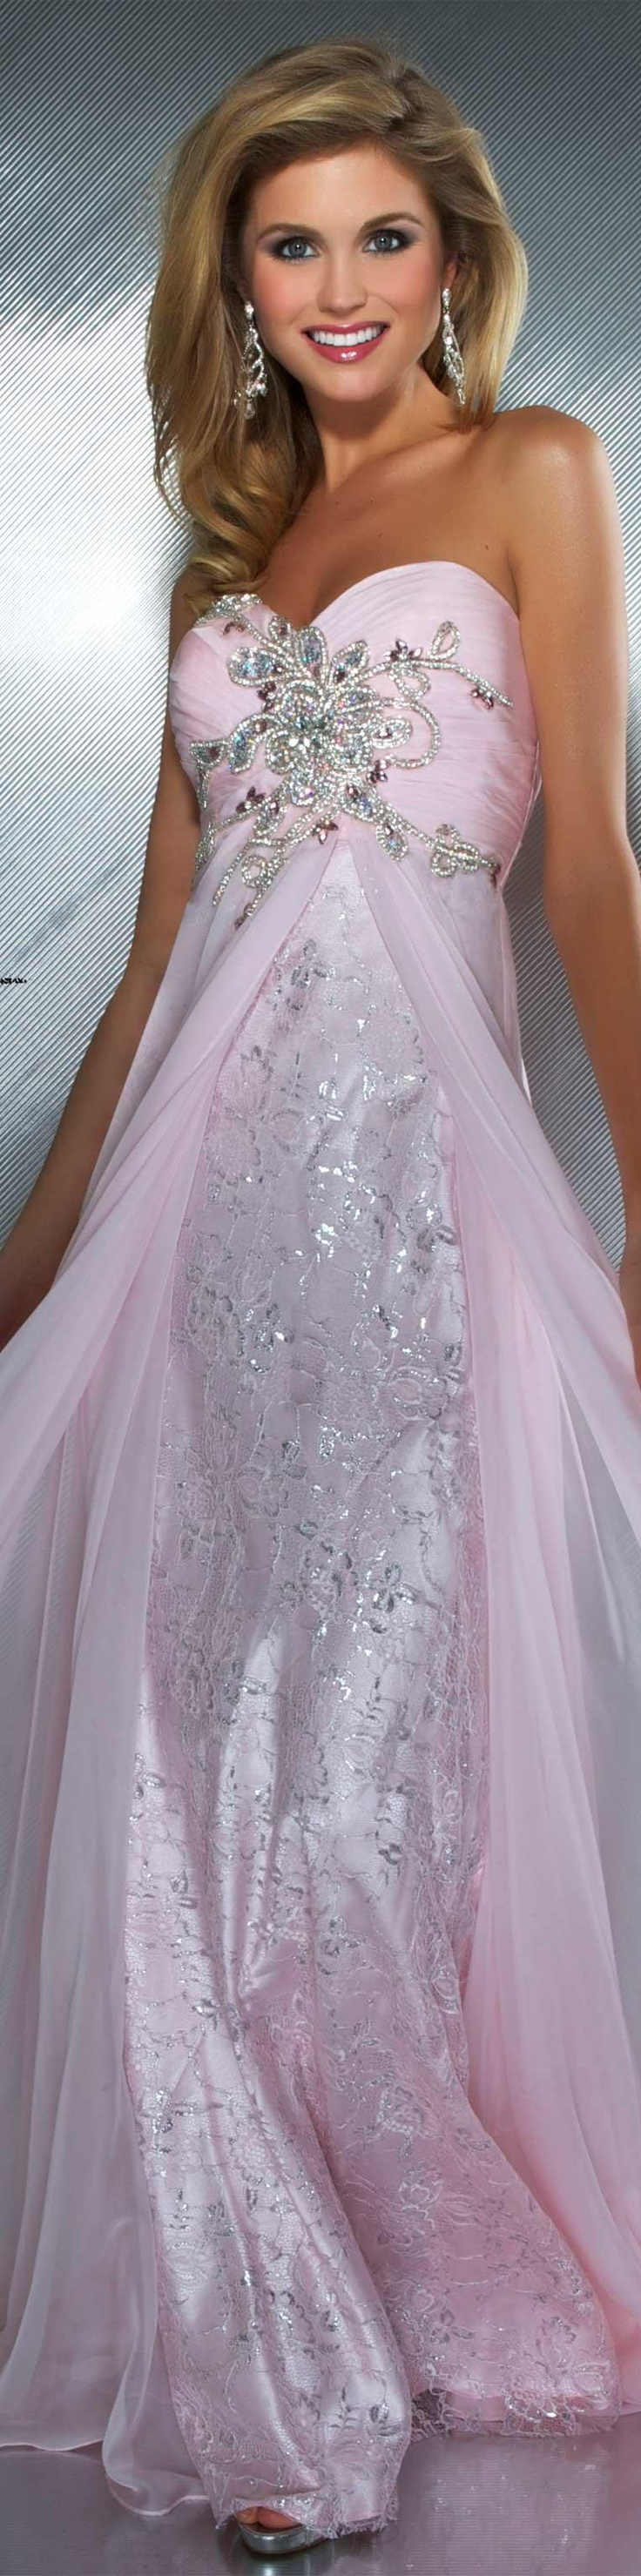 best ilusaid kleite images on pinterest wedding frocks